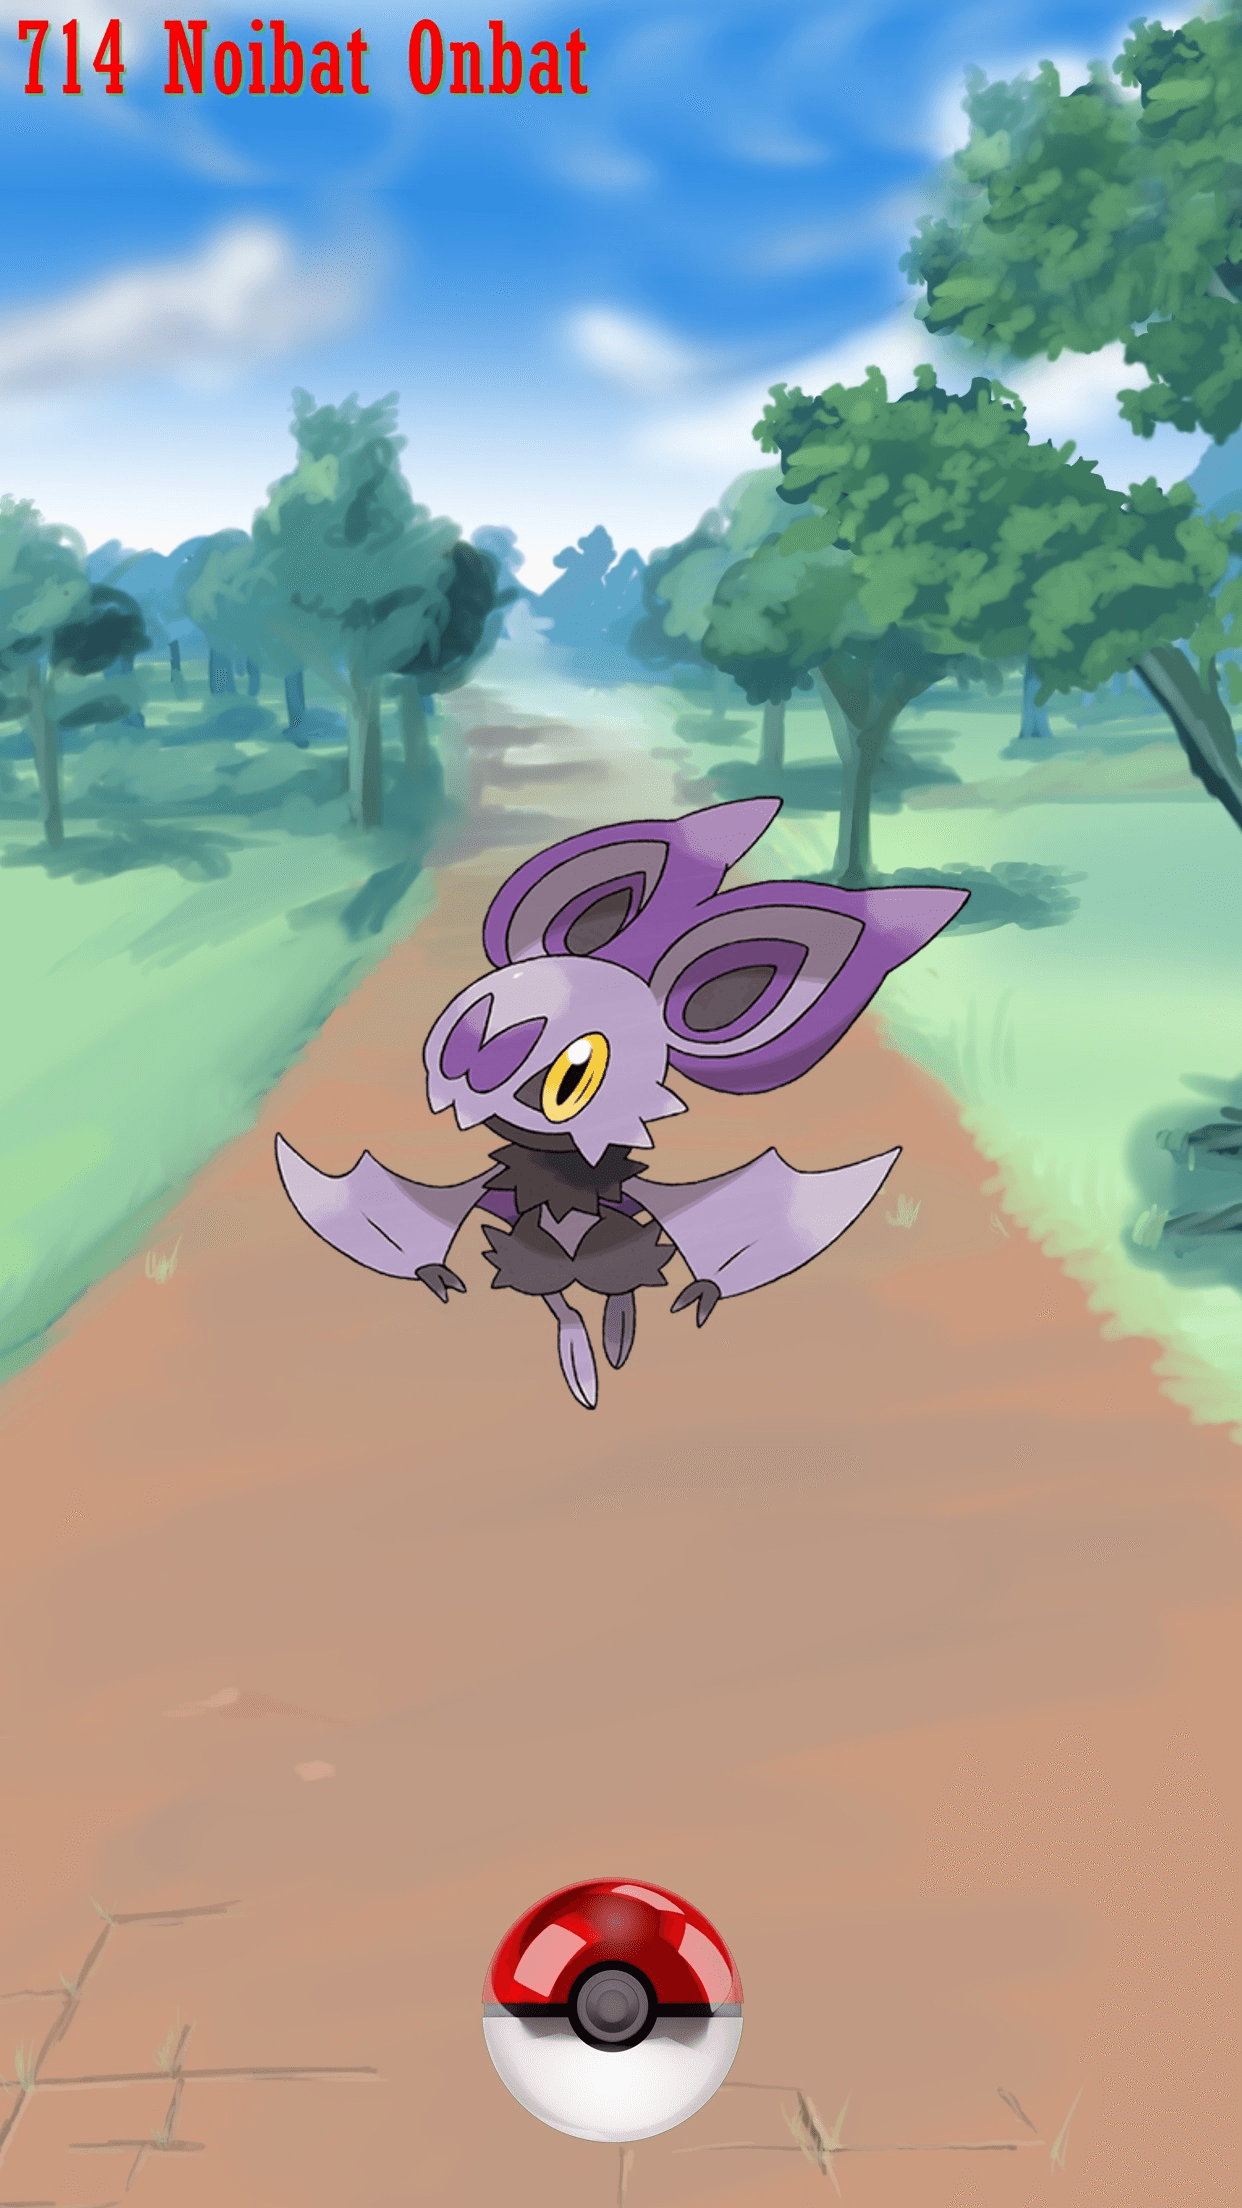 714 Noibat Onbat | Wallpaper